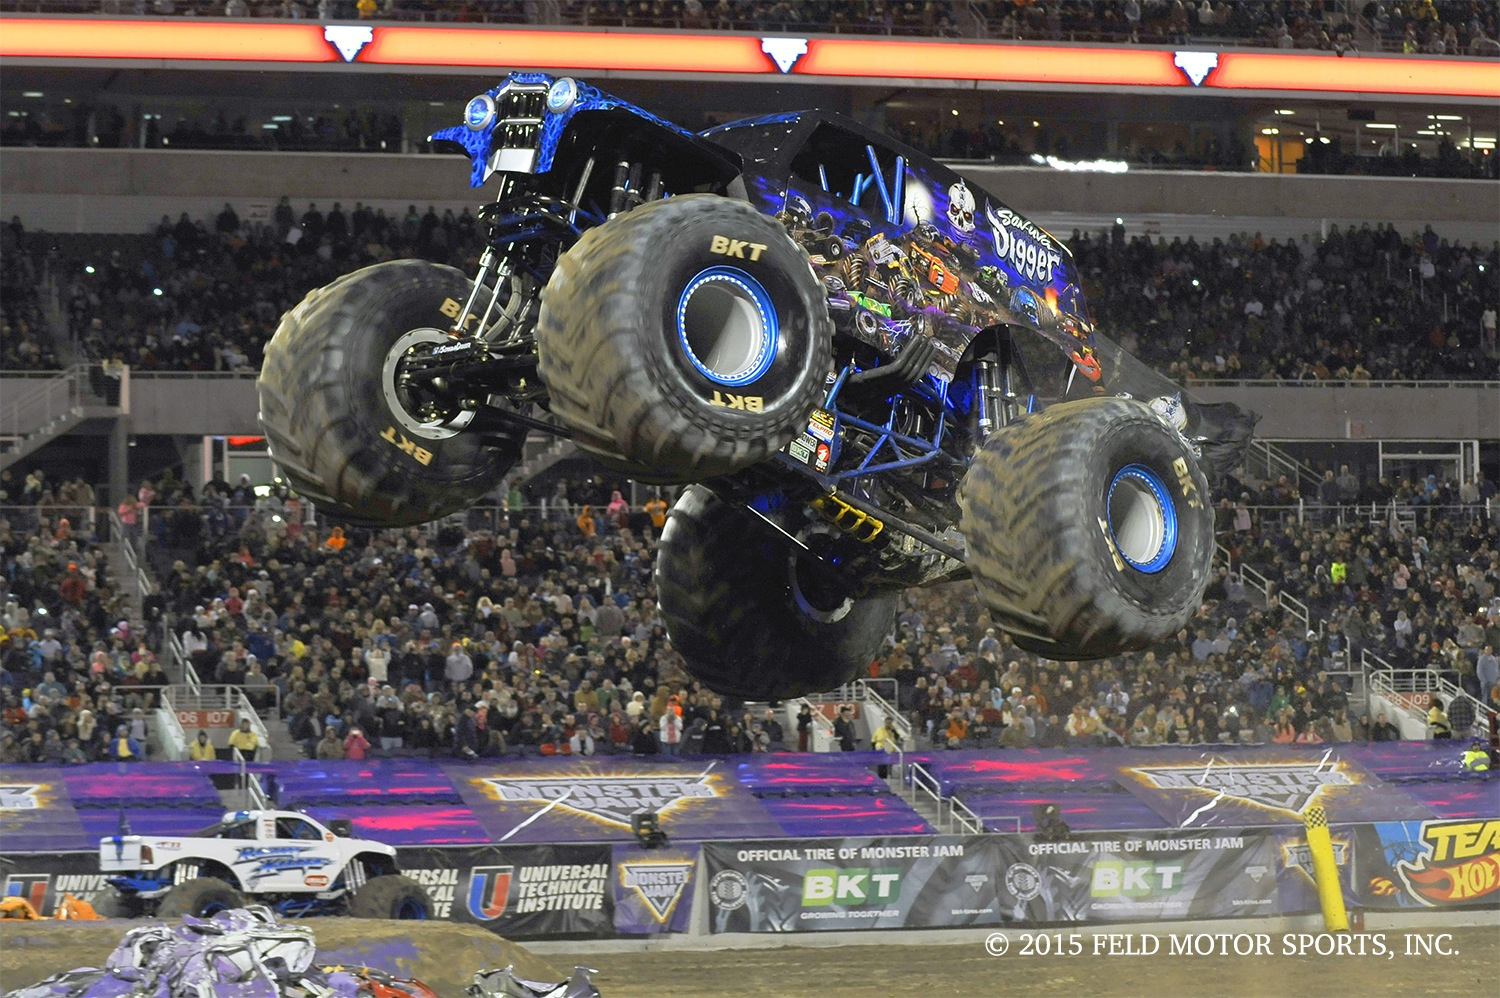 BKT_MonsterJam_1 (8)